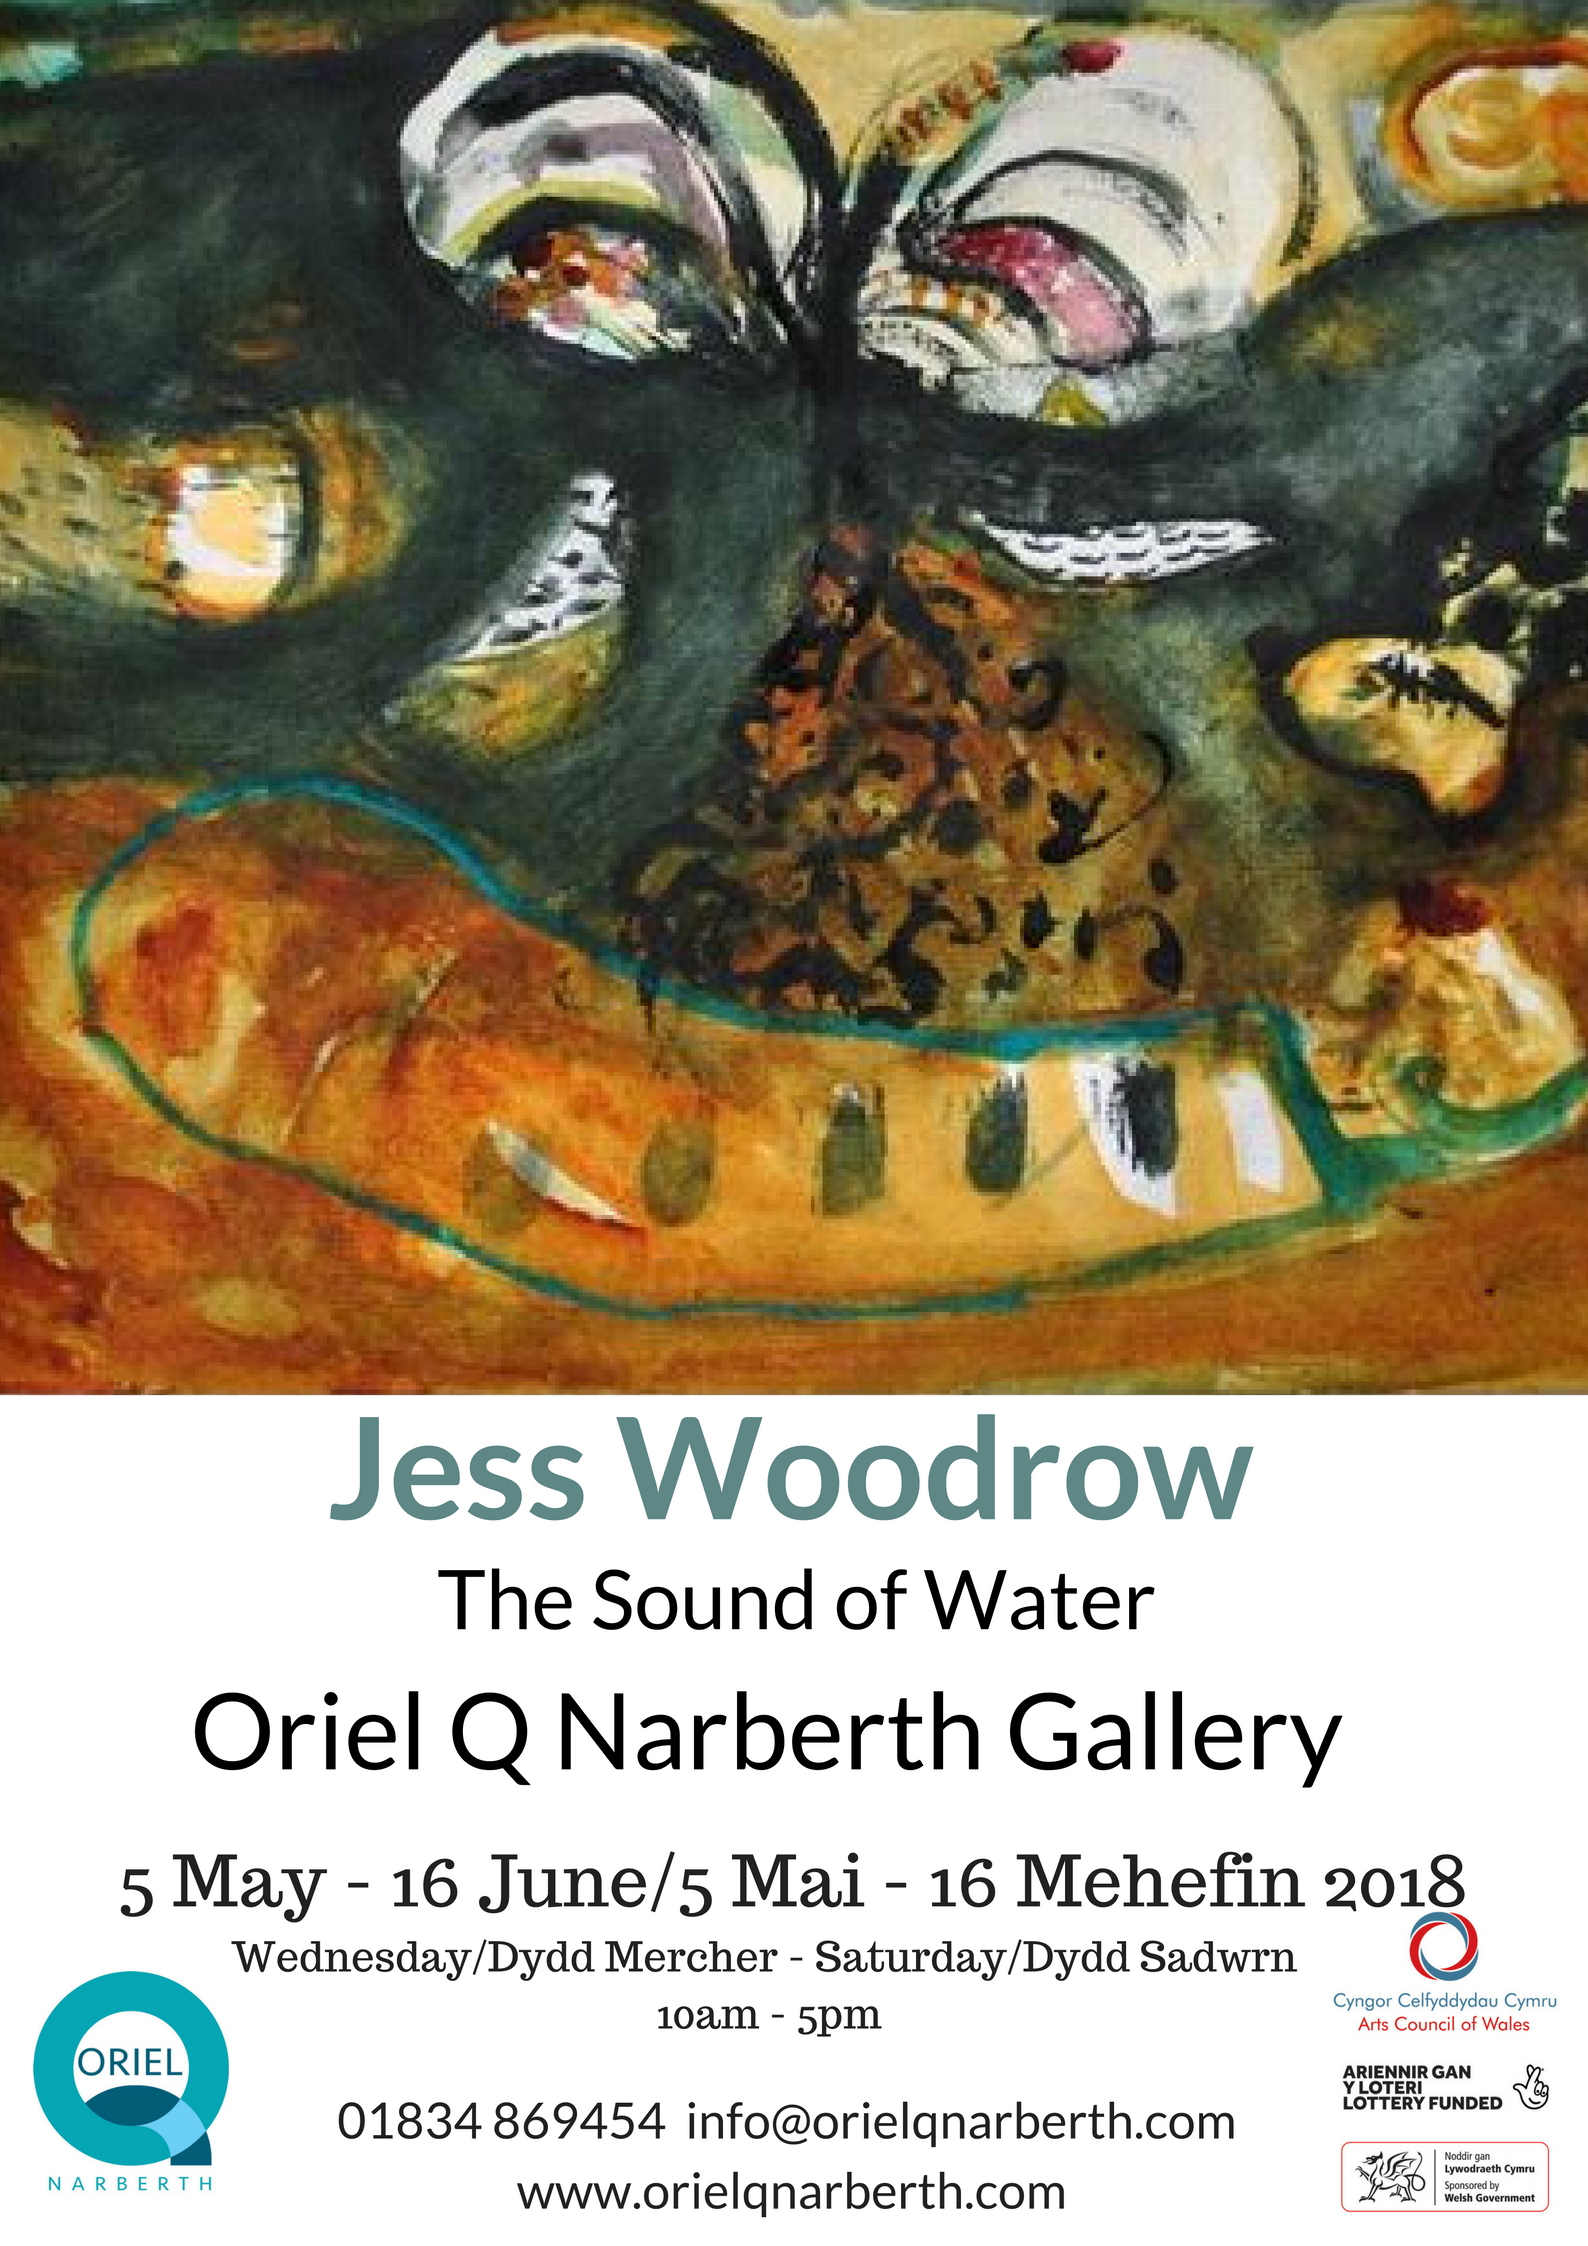 jess woodrow poster updated.png